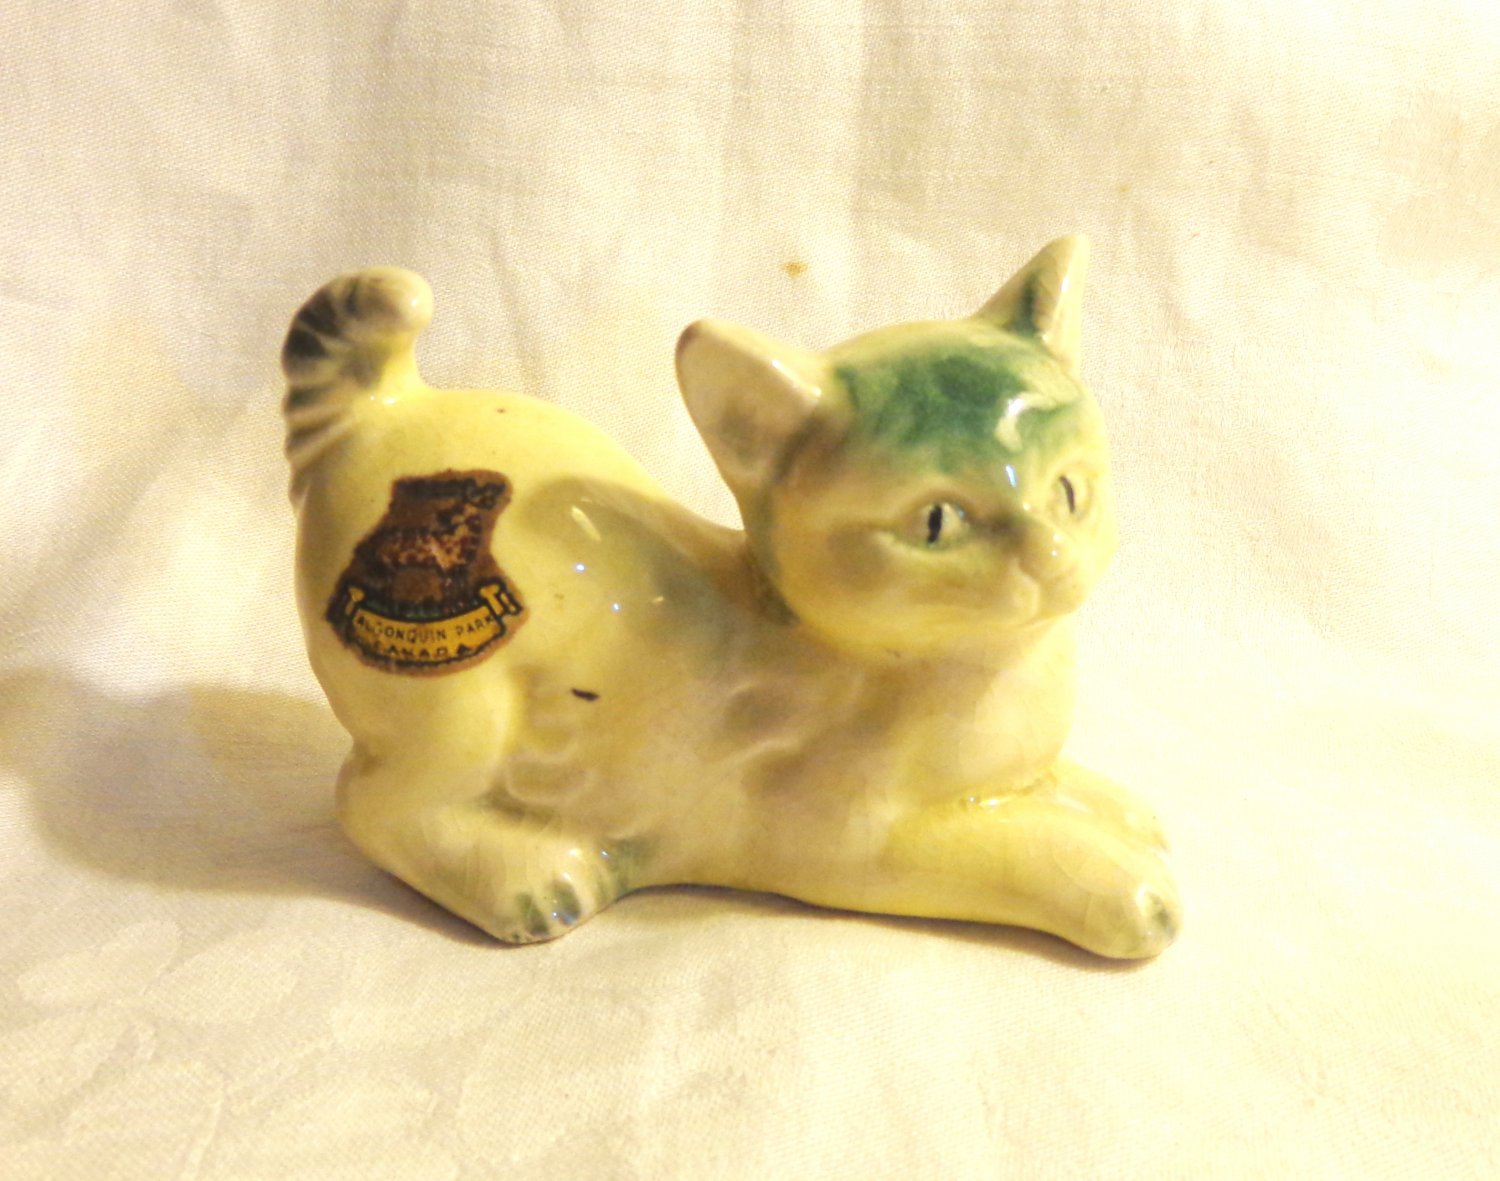 Old cat figurine with Algonquin Park decal ceramic playful made in Japan vintage cm1498